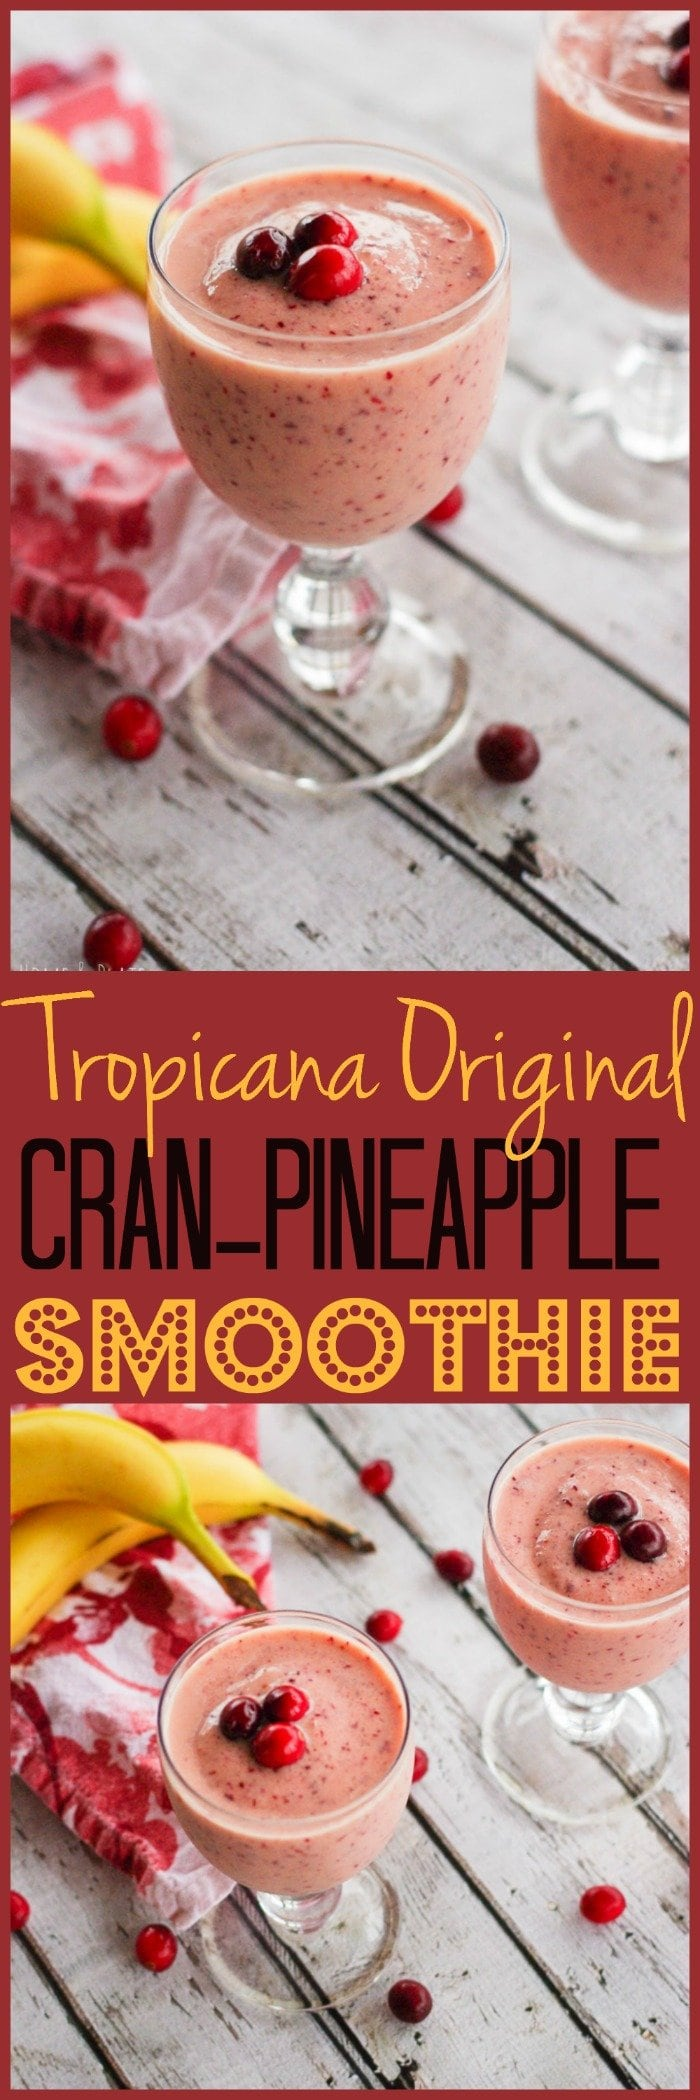 Tropicana Original Cran-Pineapple Smoothie | www.homeandplate.com | Tart, fresh cranberries citrusy pineapple, banana and orange juice are the perfect ingredients for this winter smoothie.